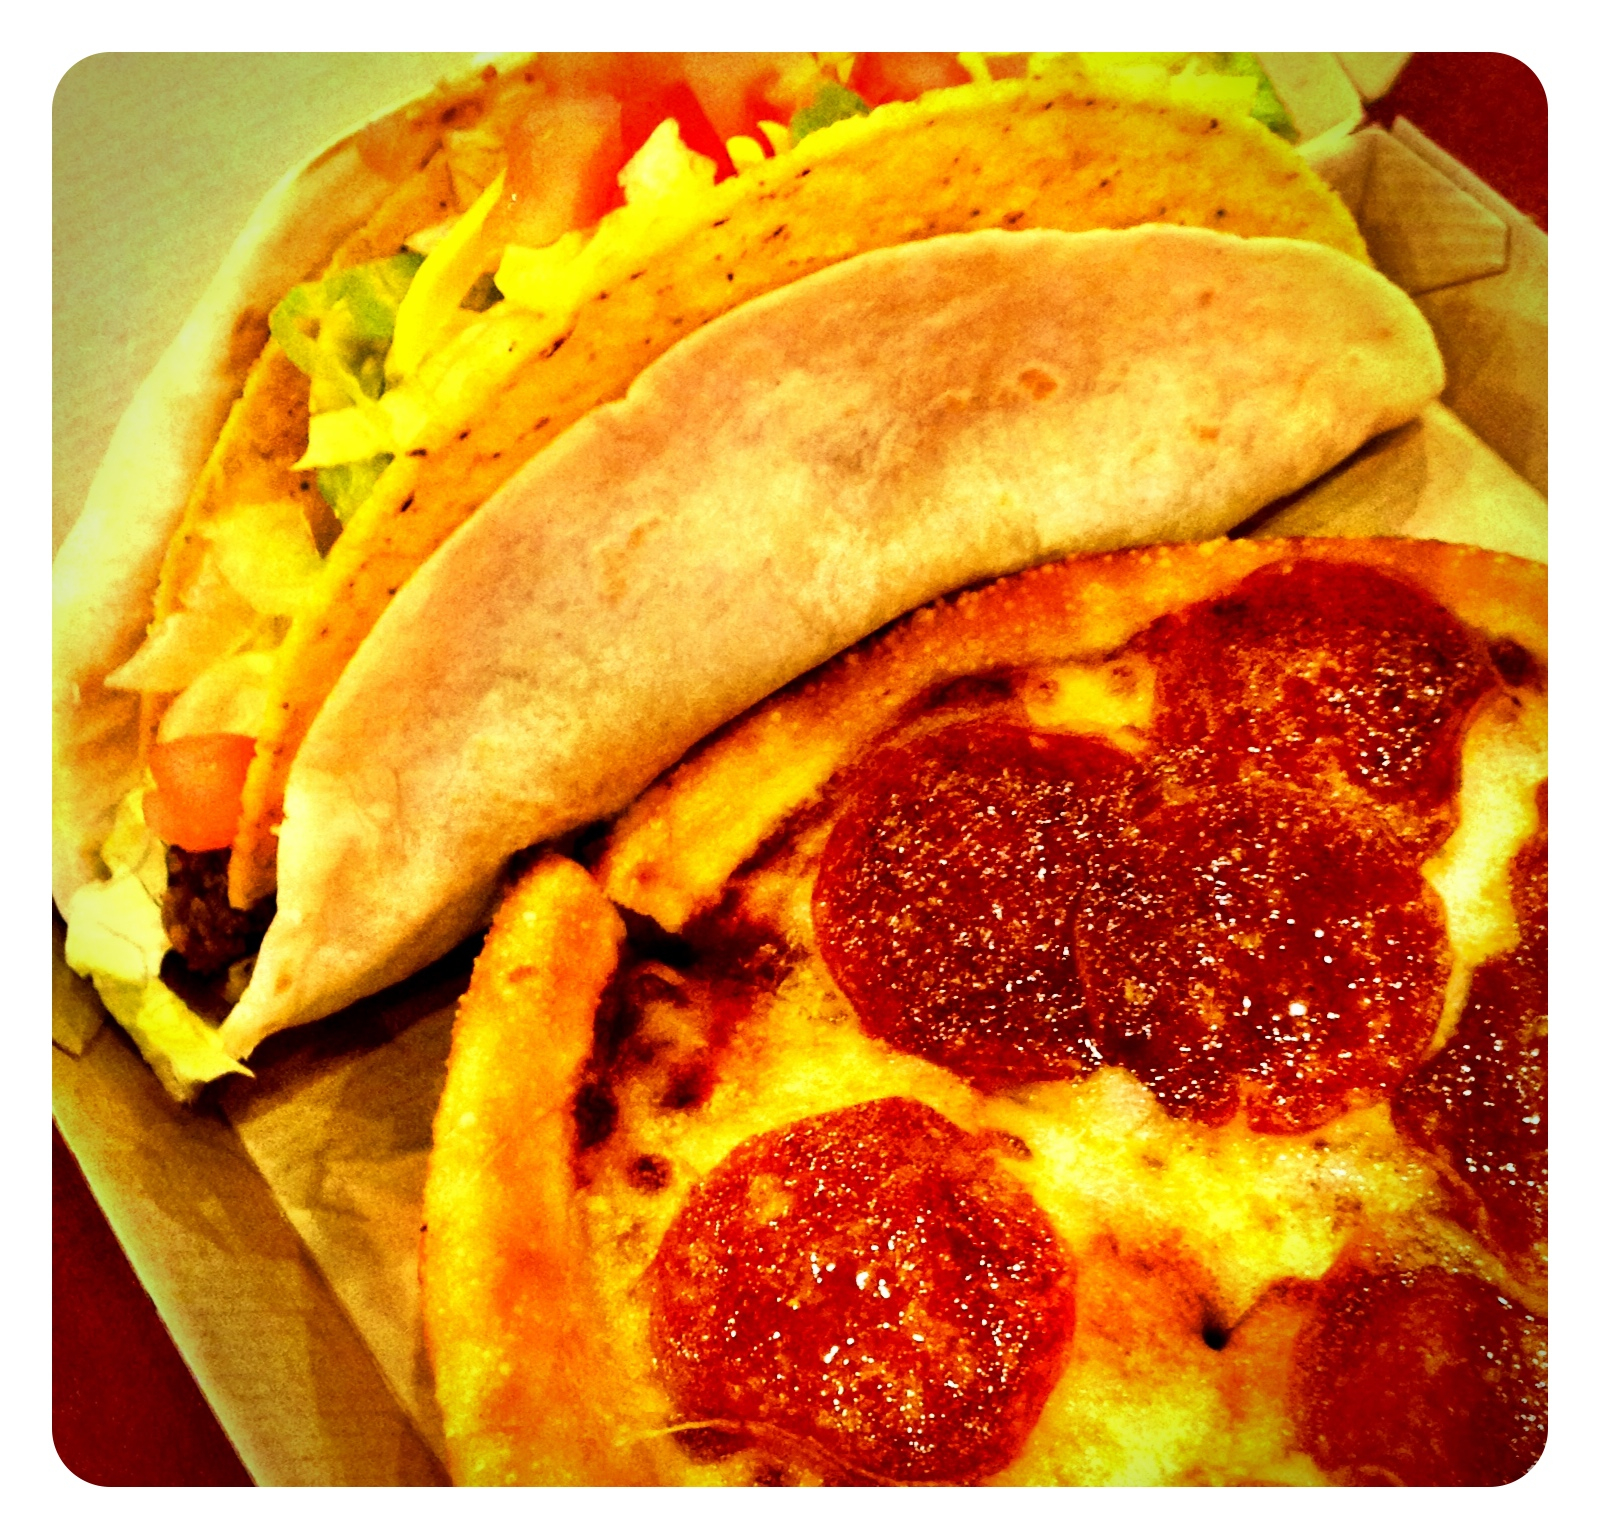 Taco Bell Pizza Hut Express Double Delight Snaxtime